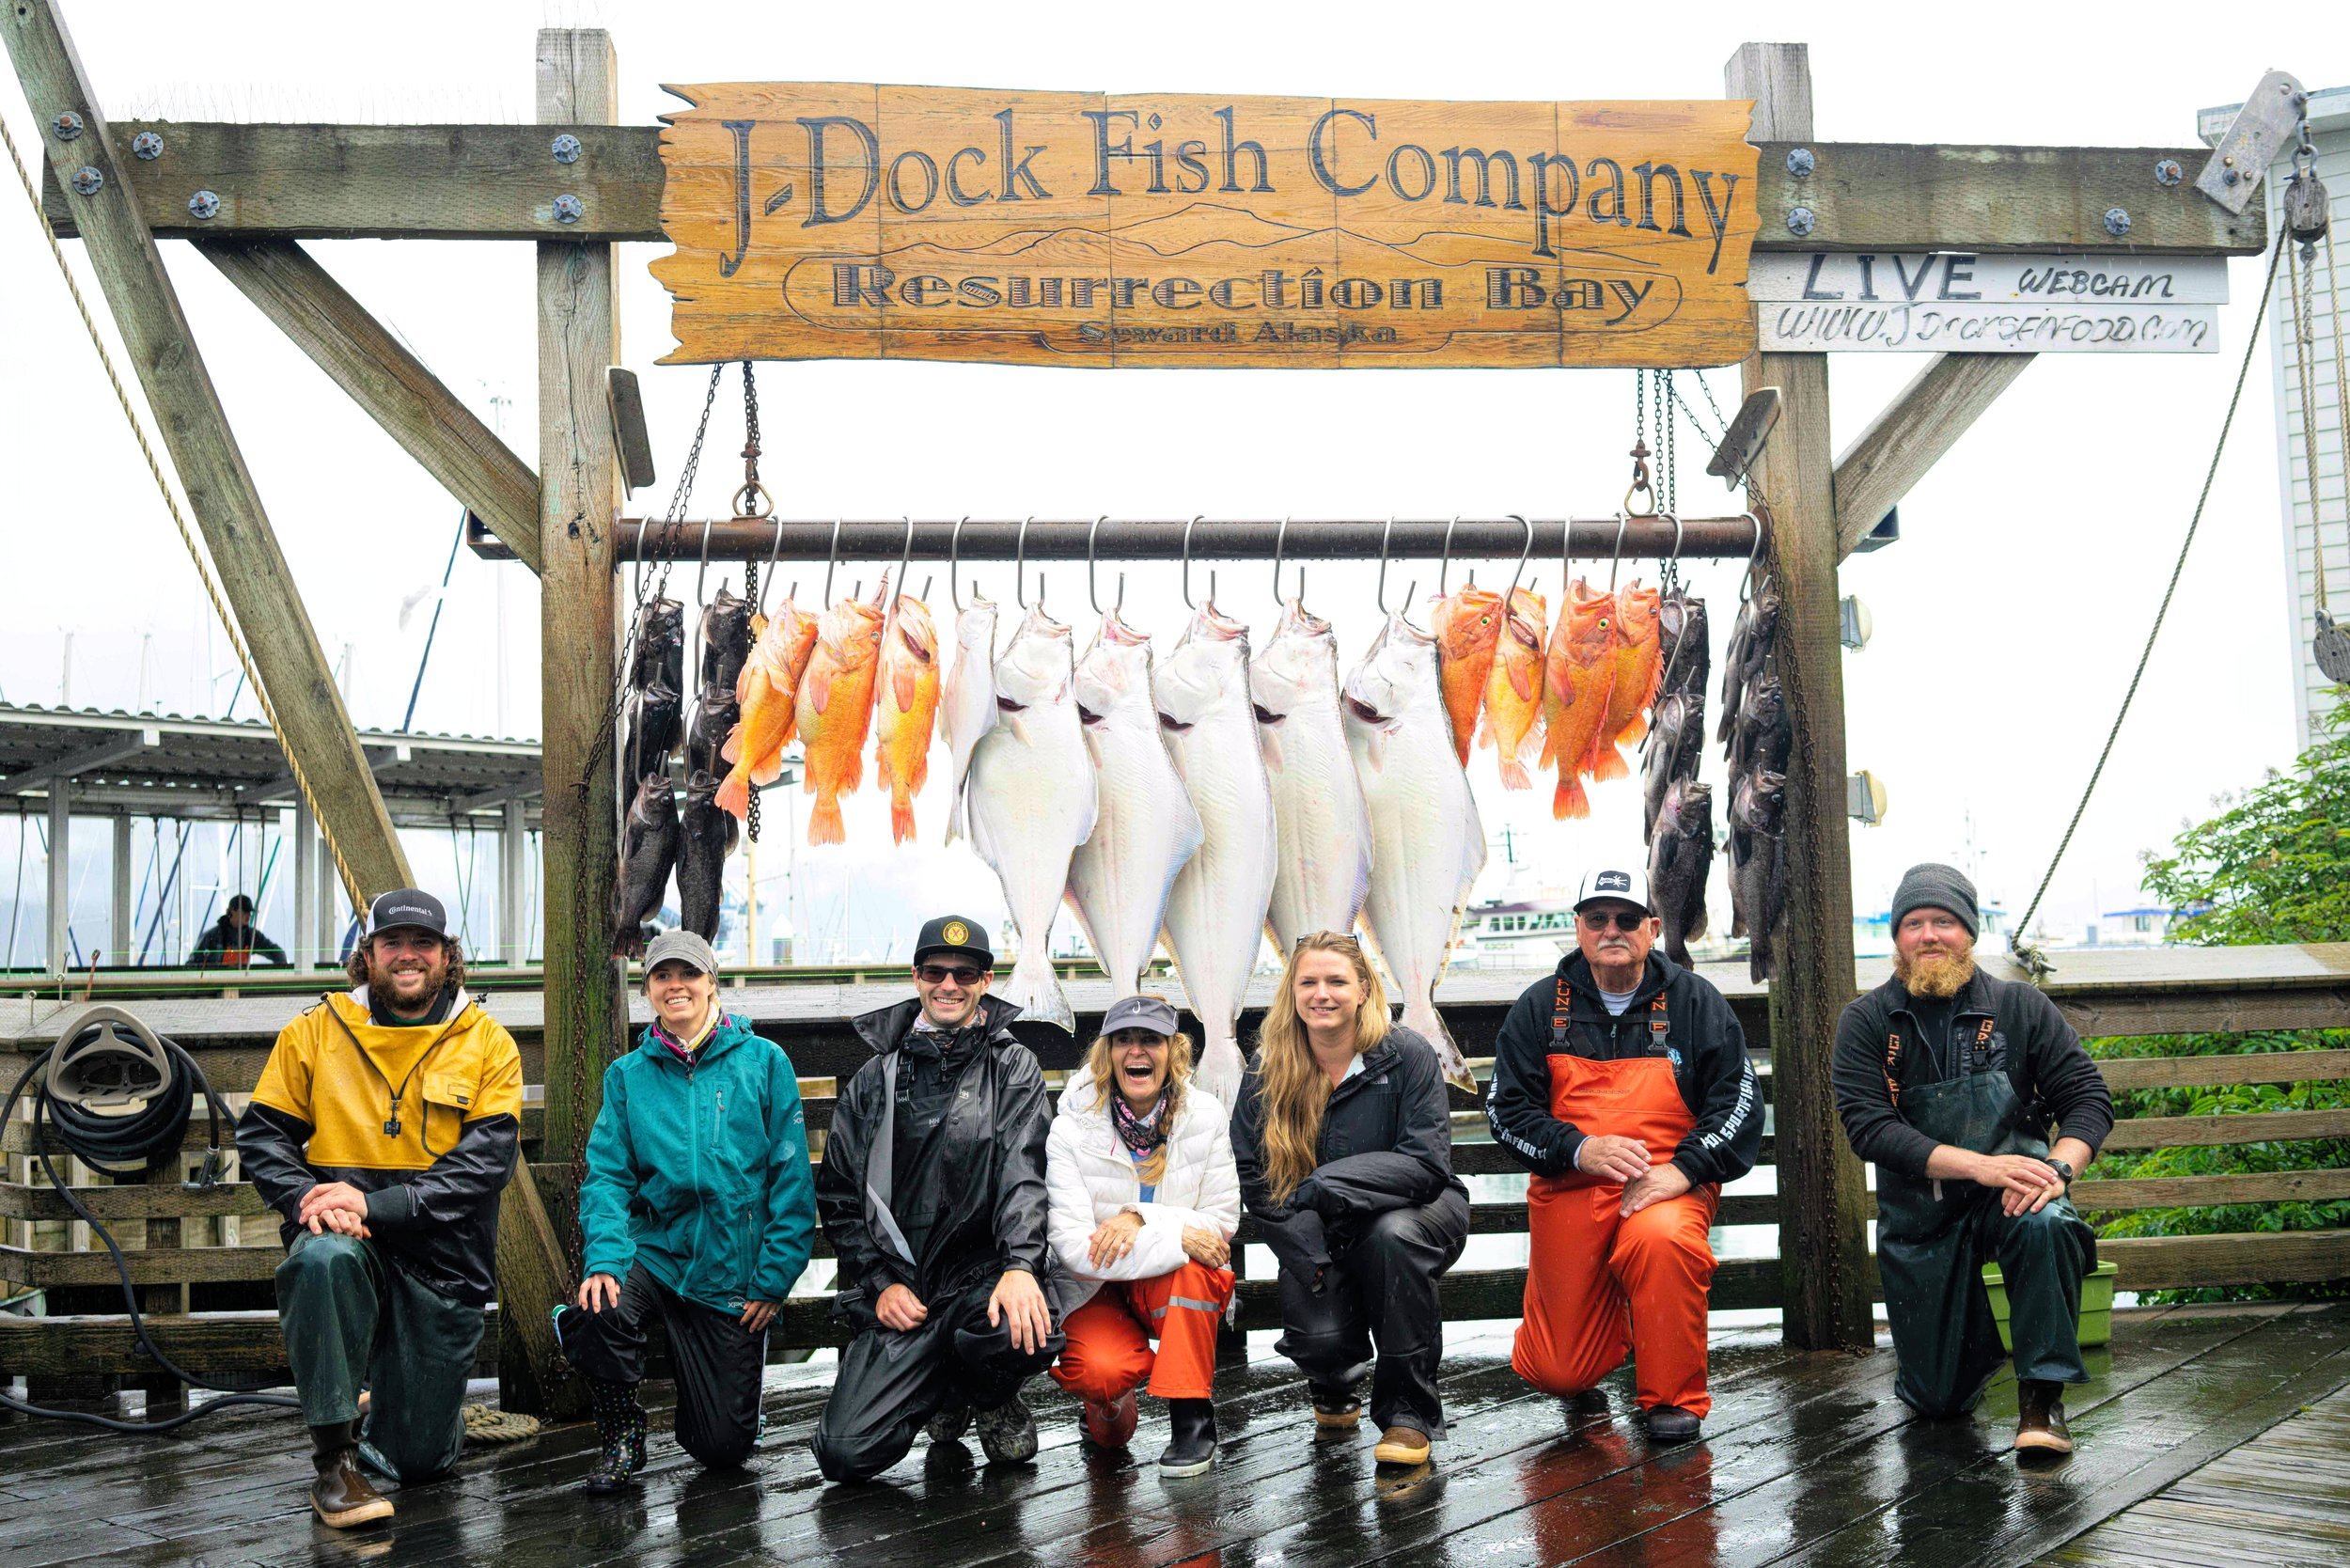 MAY SPECIAL!!! - halibut/rockfishmay 9-may 31$275/person